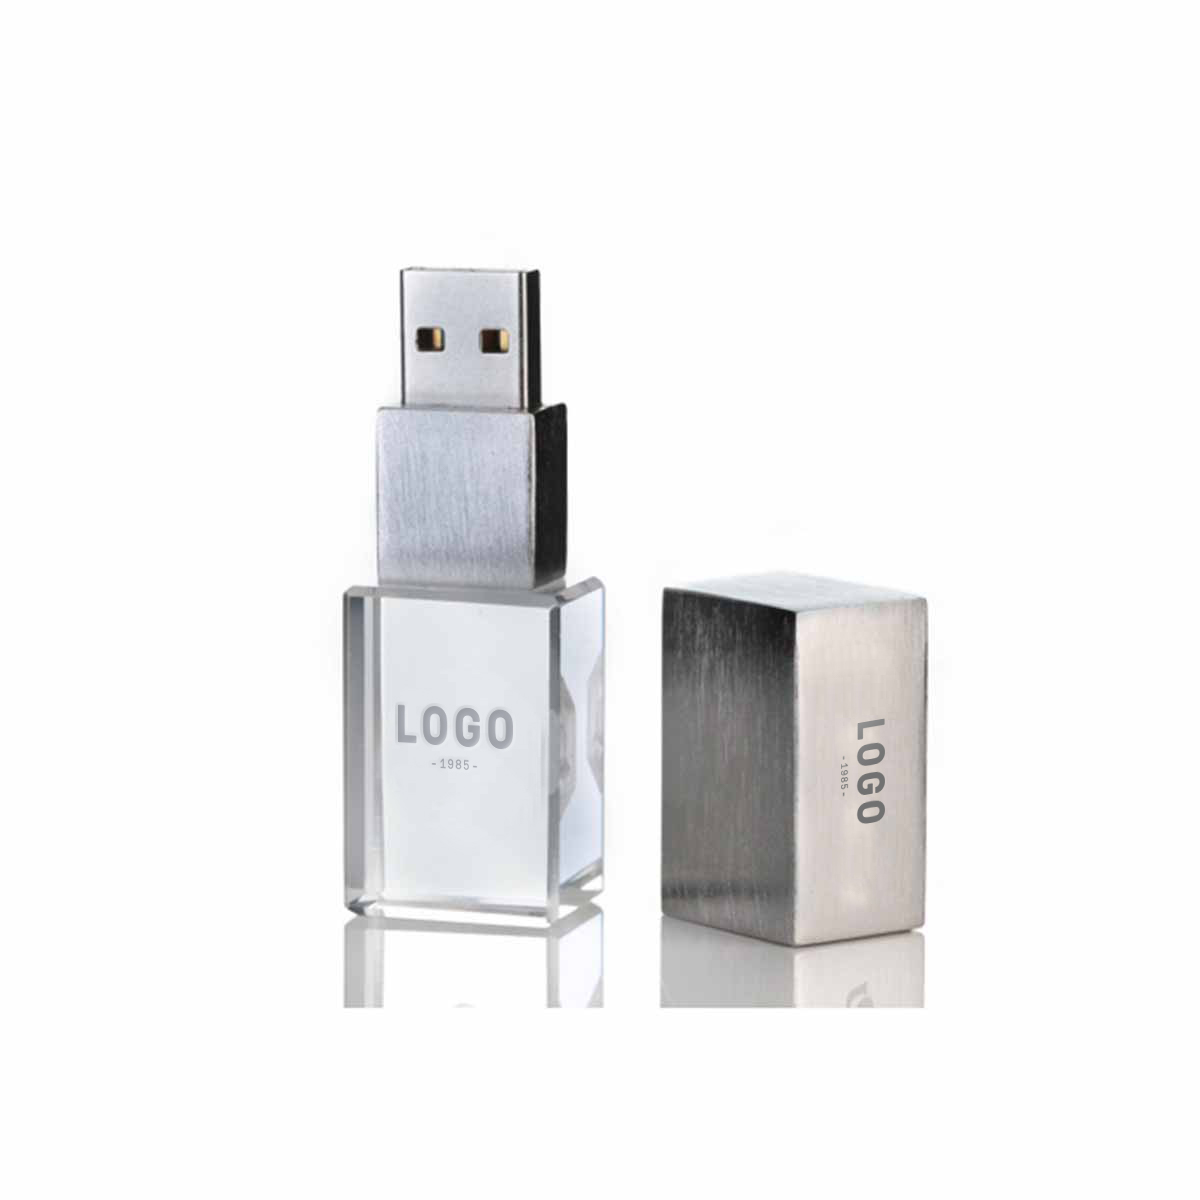 130216 acrylic flash drive laser engraving 2 locations